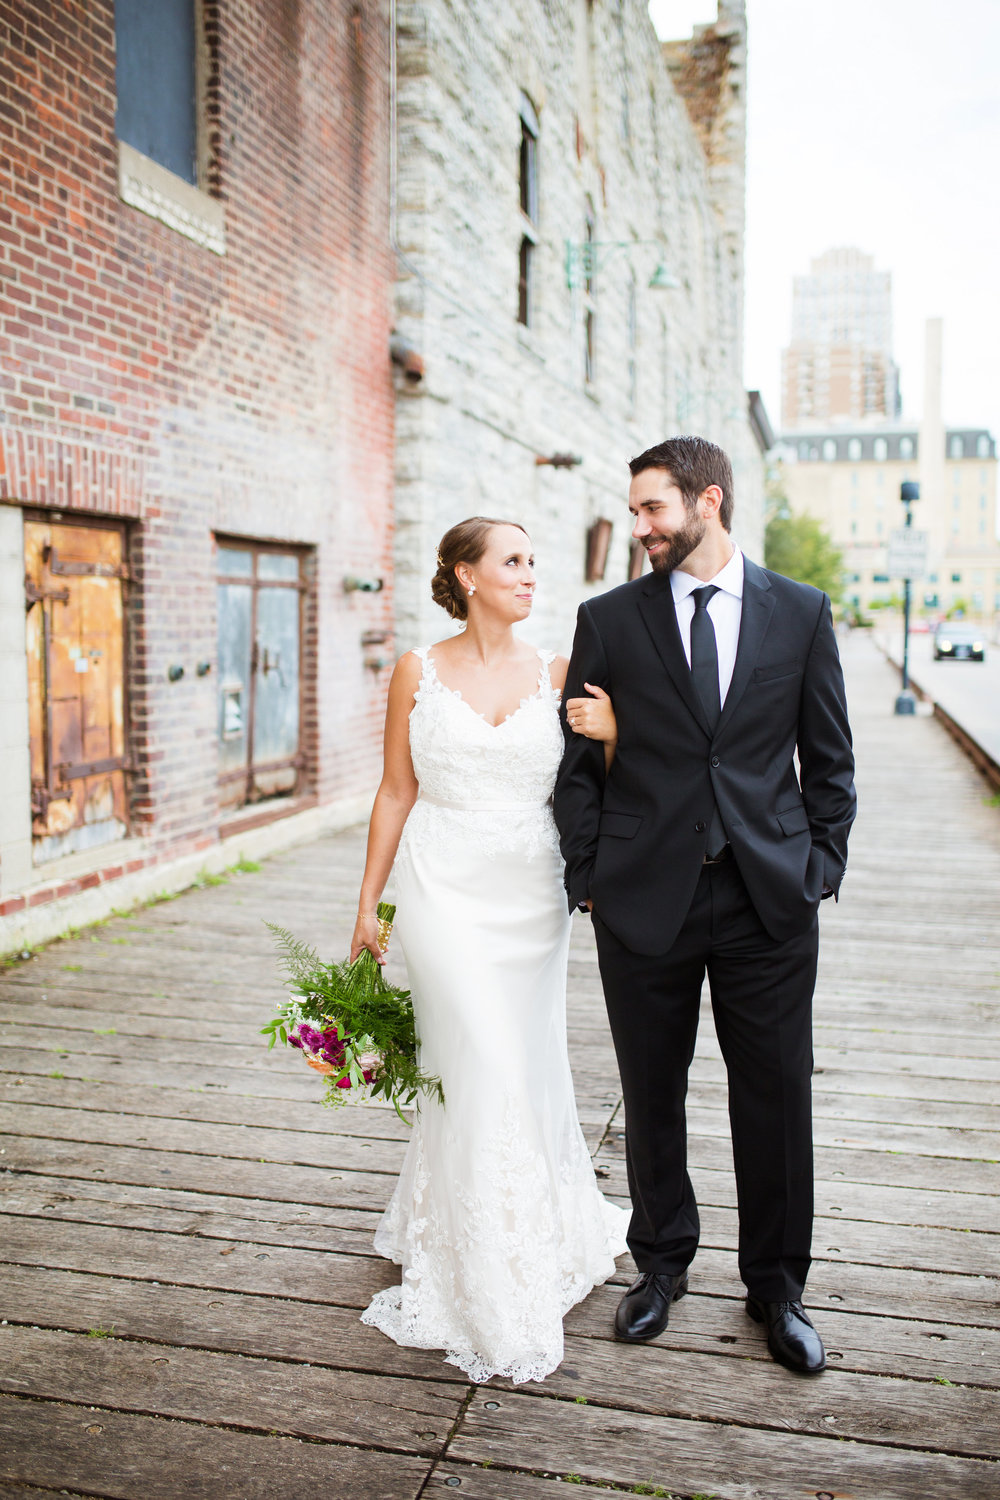 Kaylie + Travis | Sixpence Events wedding planner in the midwest | Studio KH photography | bridal and groom pictures with brick